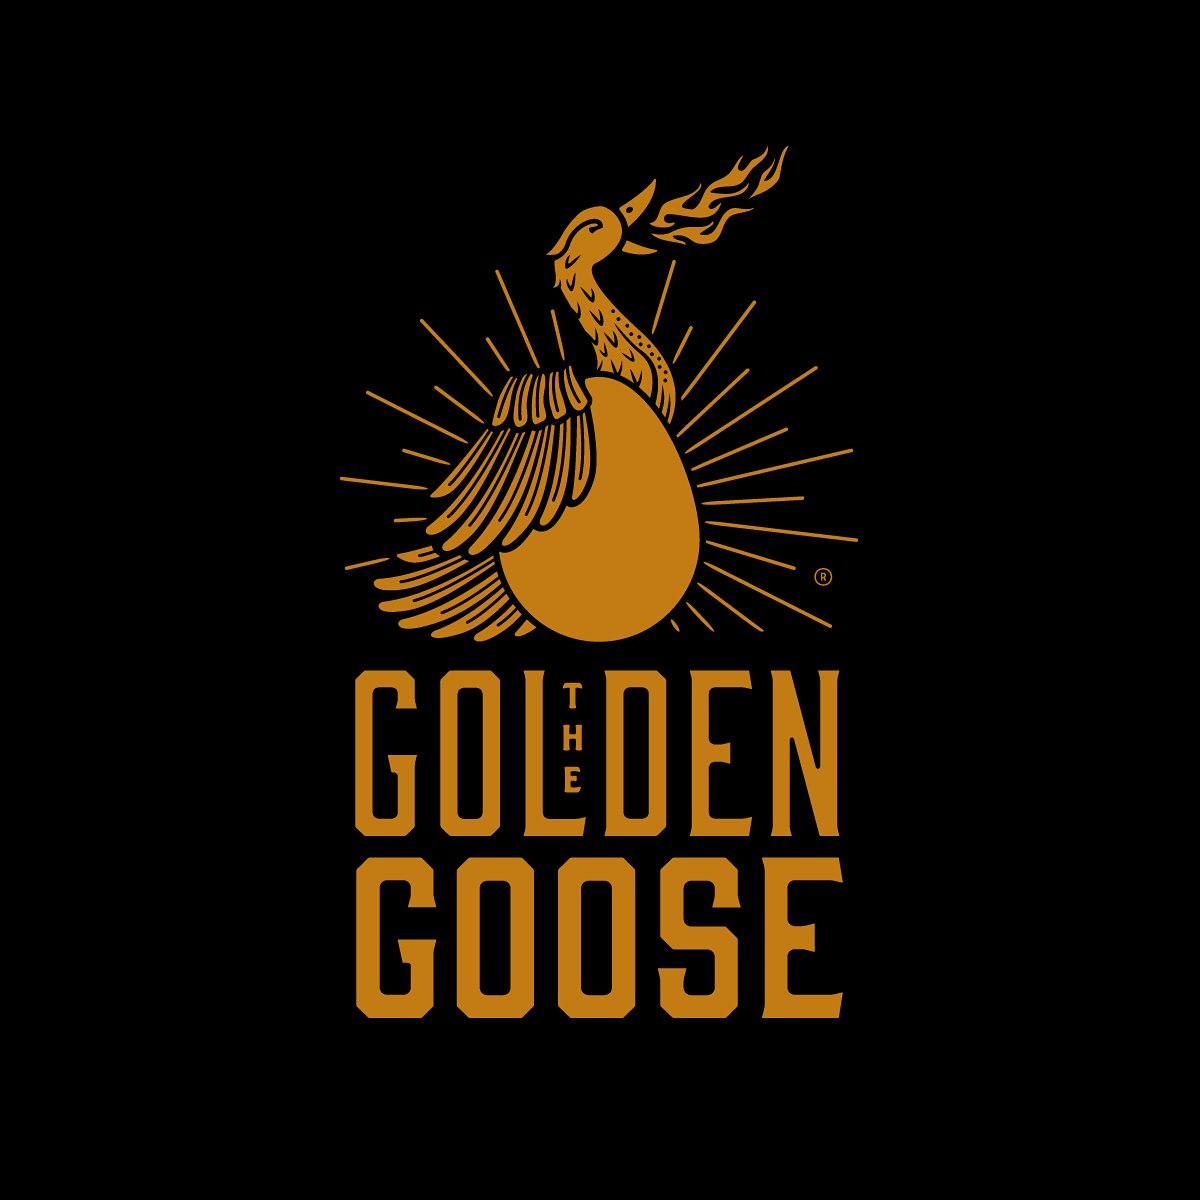 The golden goose attachment